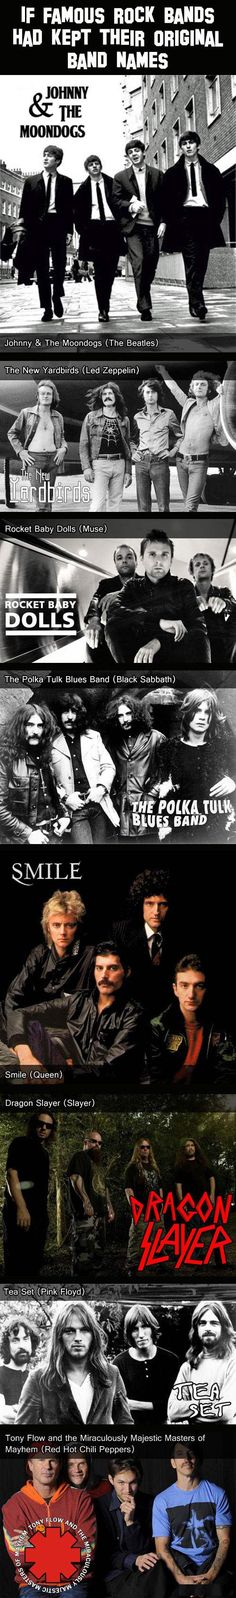 If bands had kept their original names. sometimes change is very good